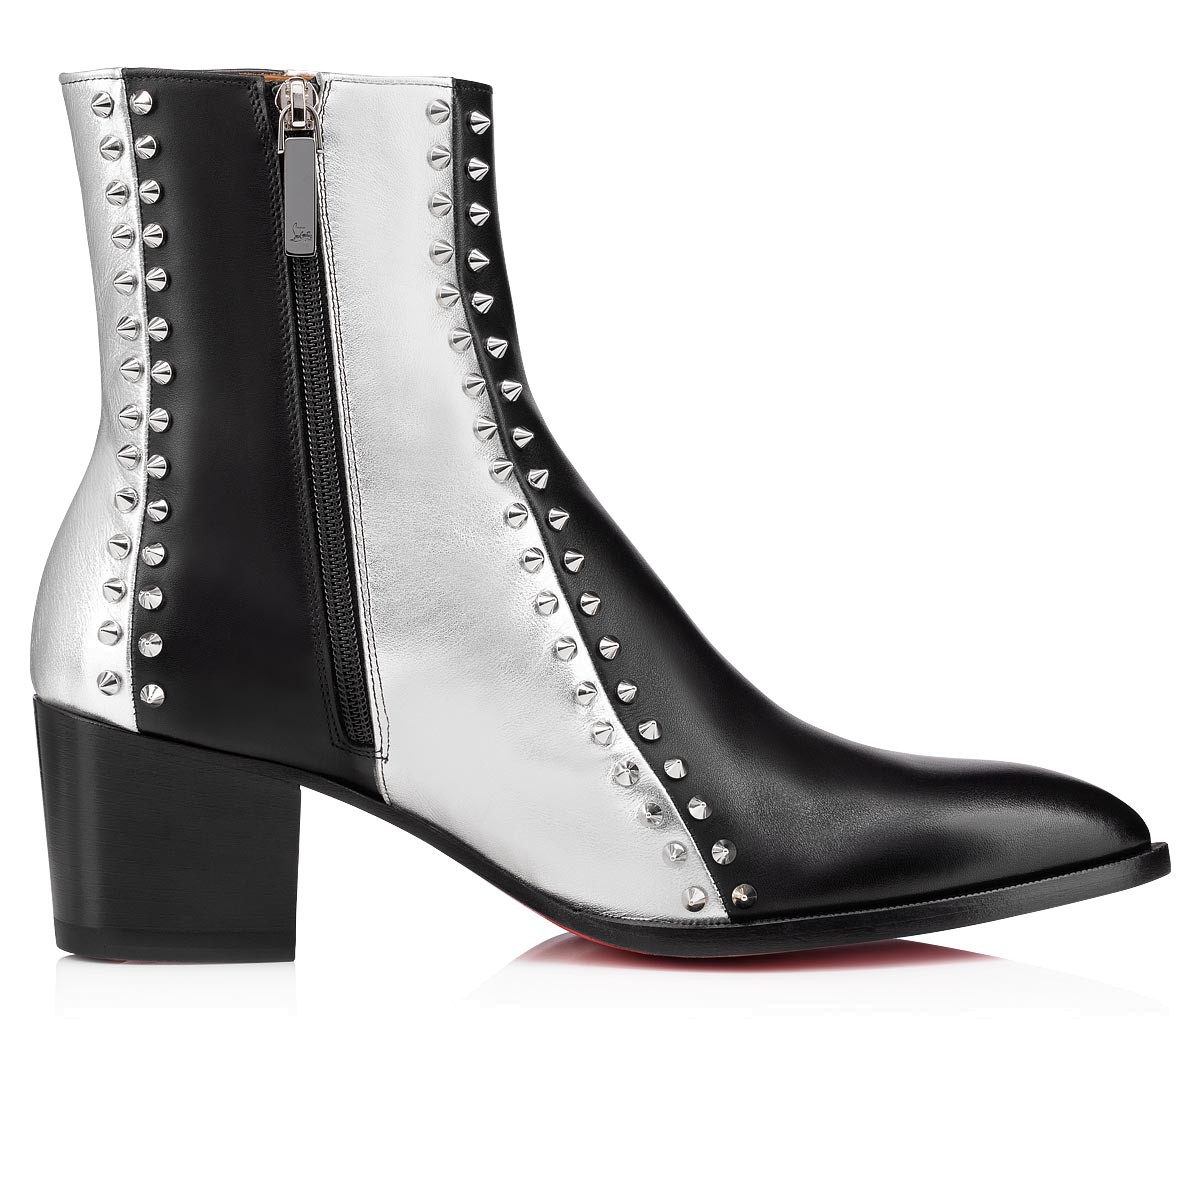 Shoes - With My Guitar Flat - Christian Louboutin